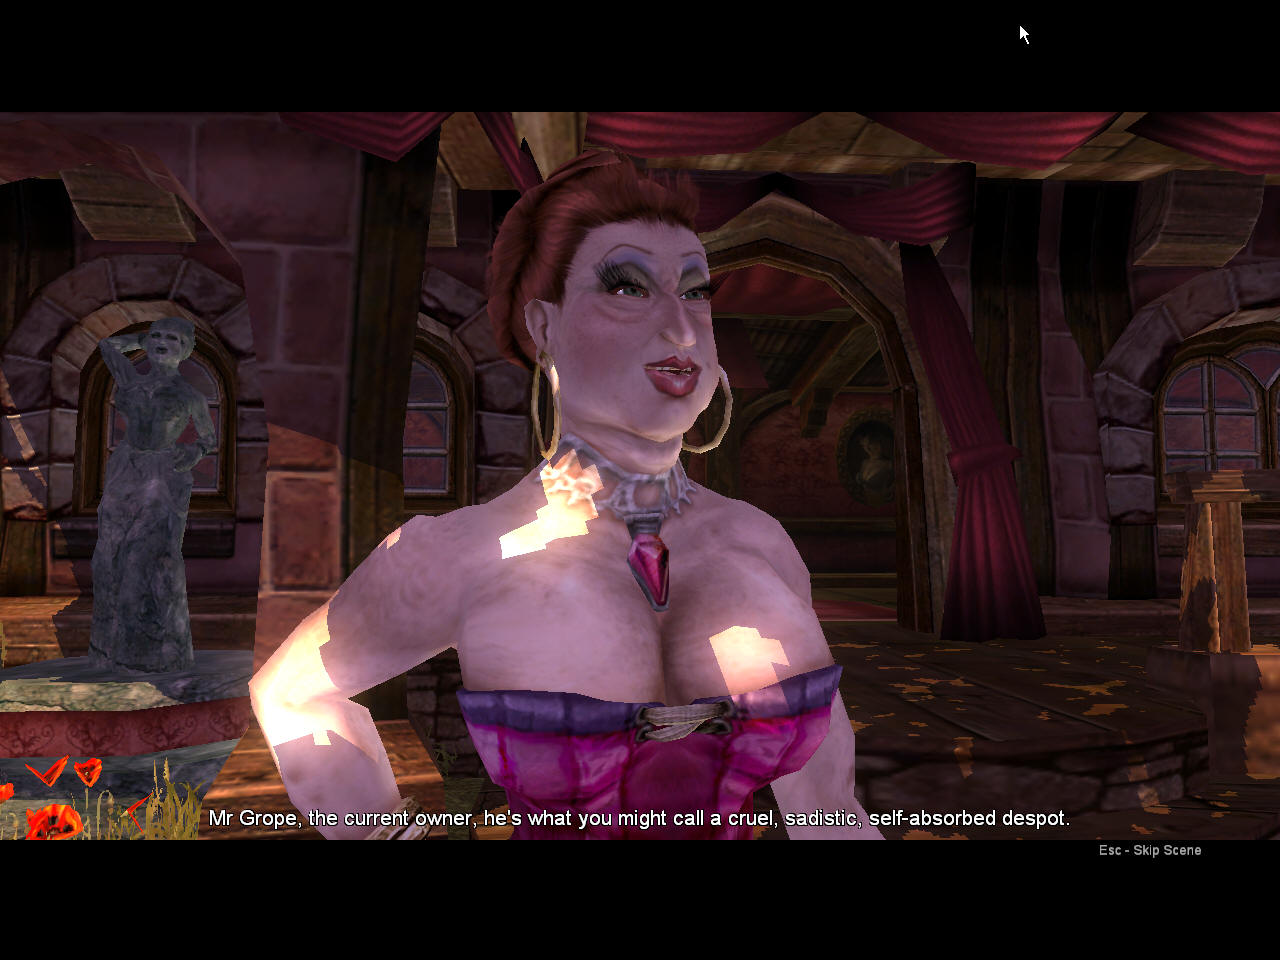 Fable theresa hentai erotica slut